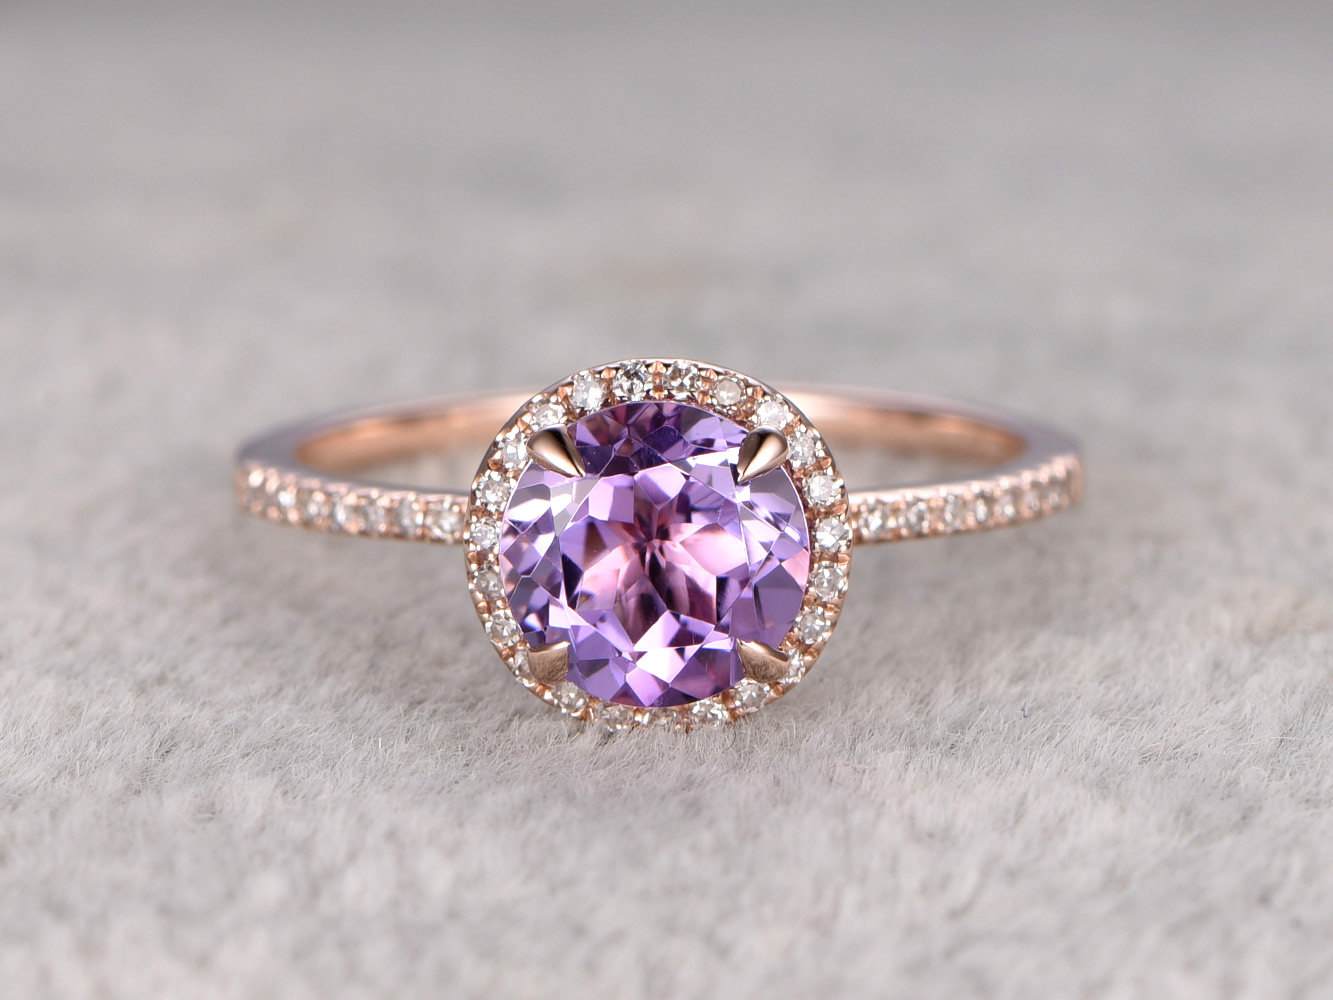 Stunning Amethyst Halo Engagement Ring